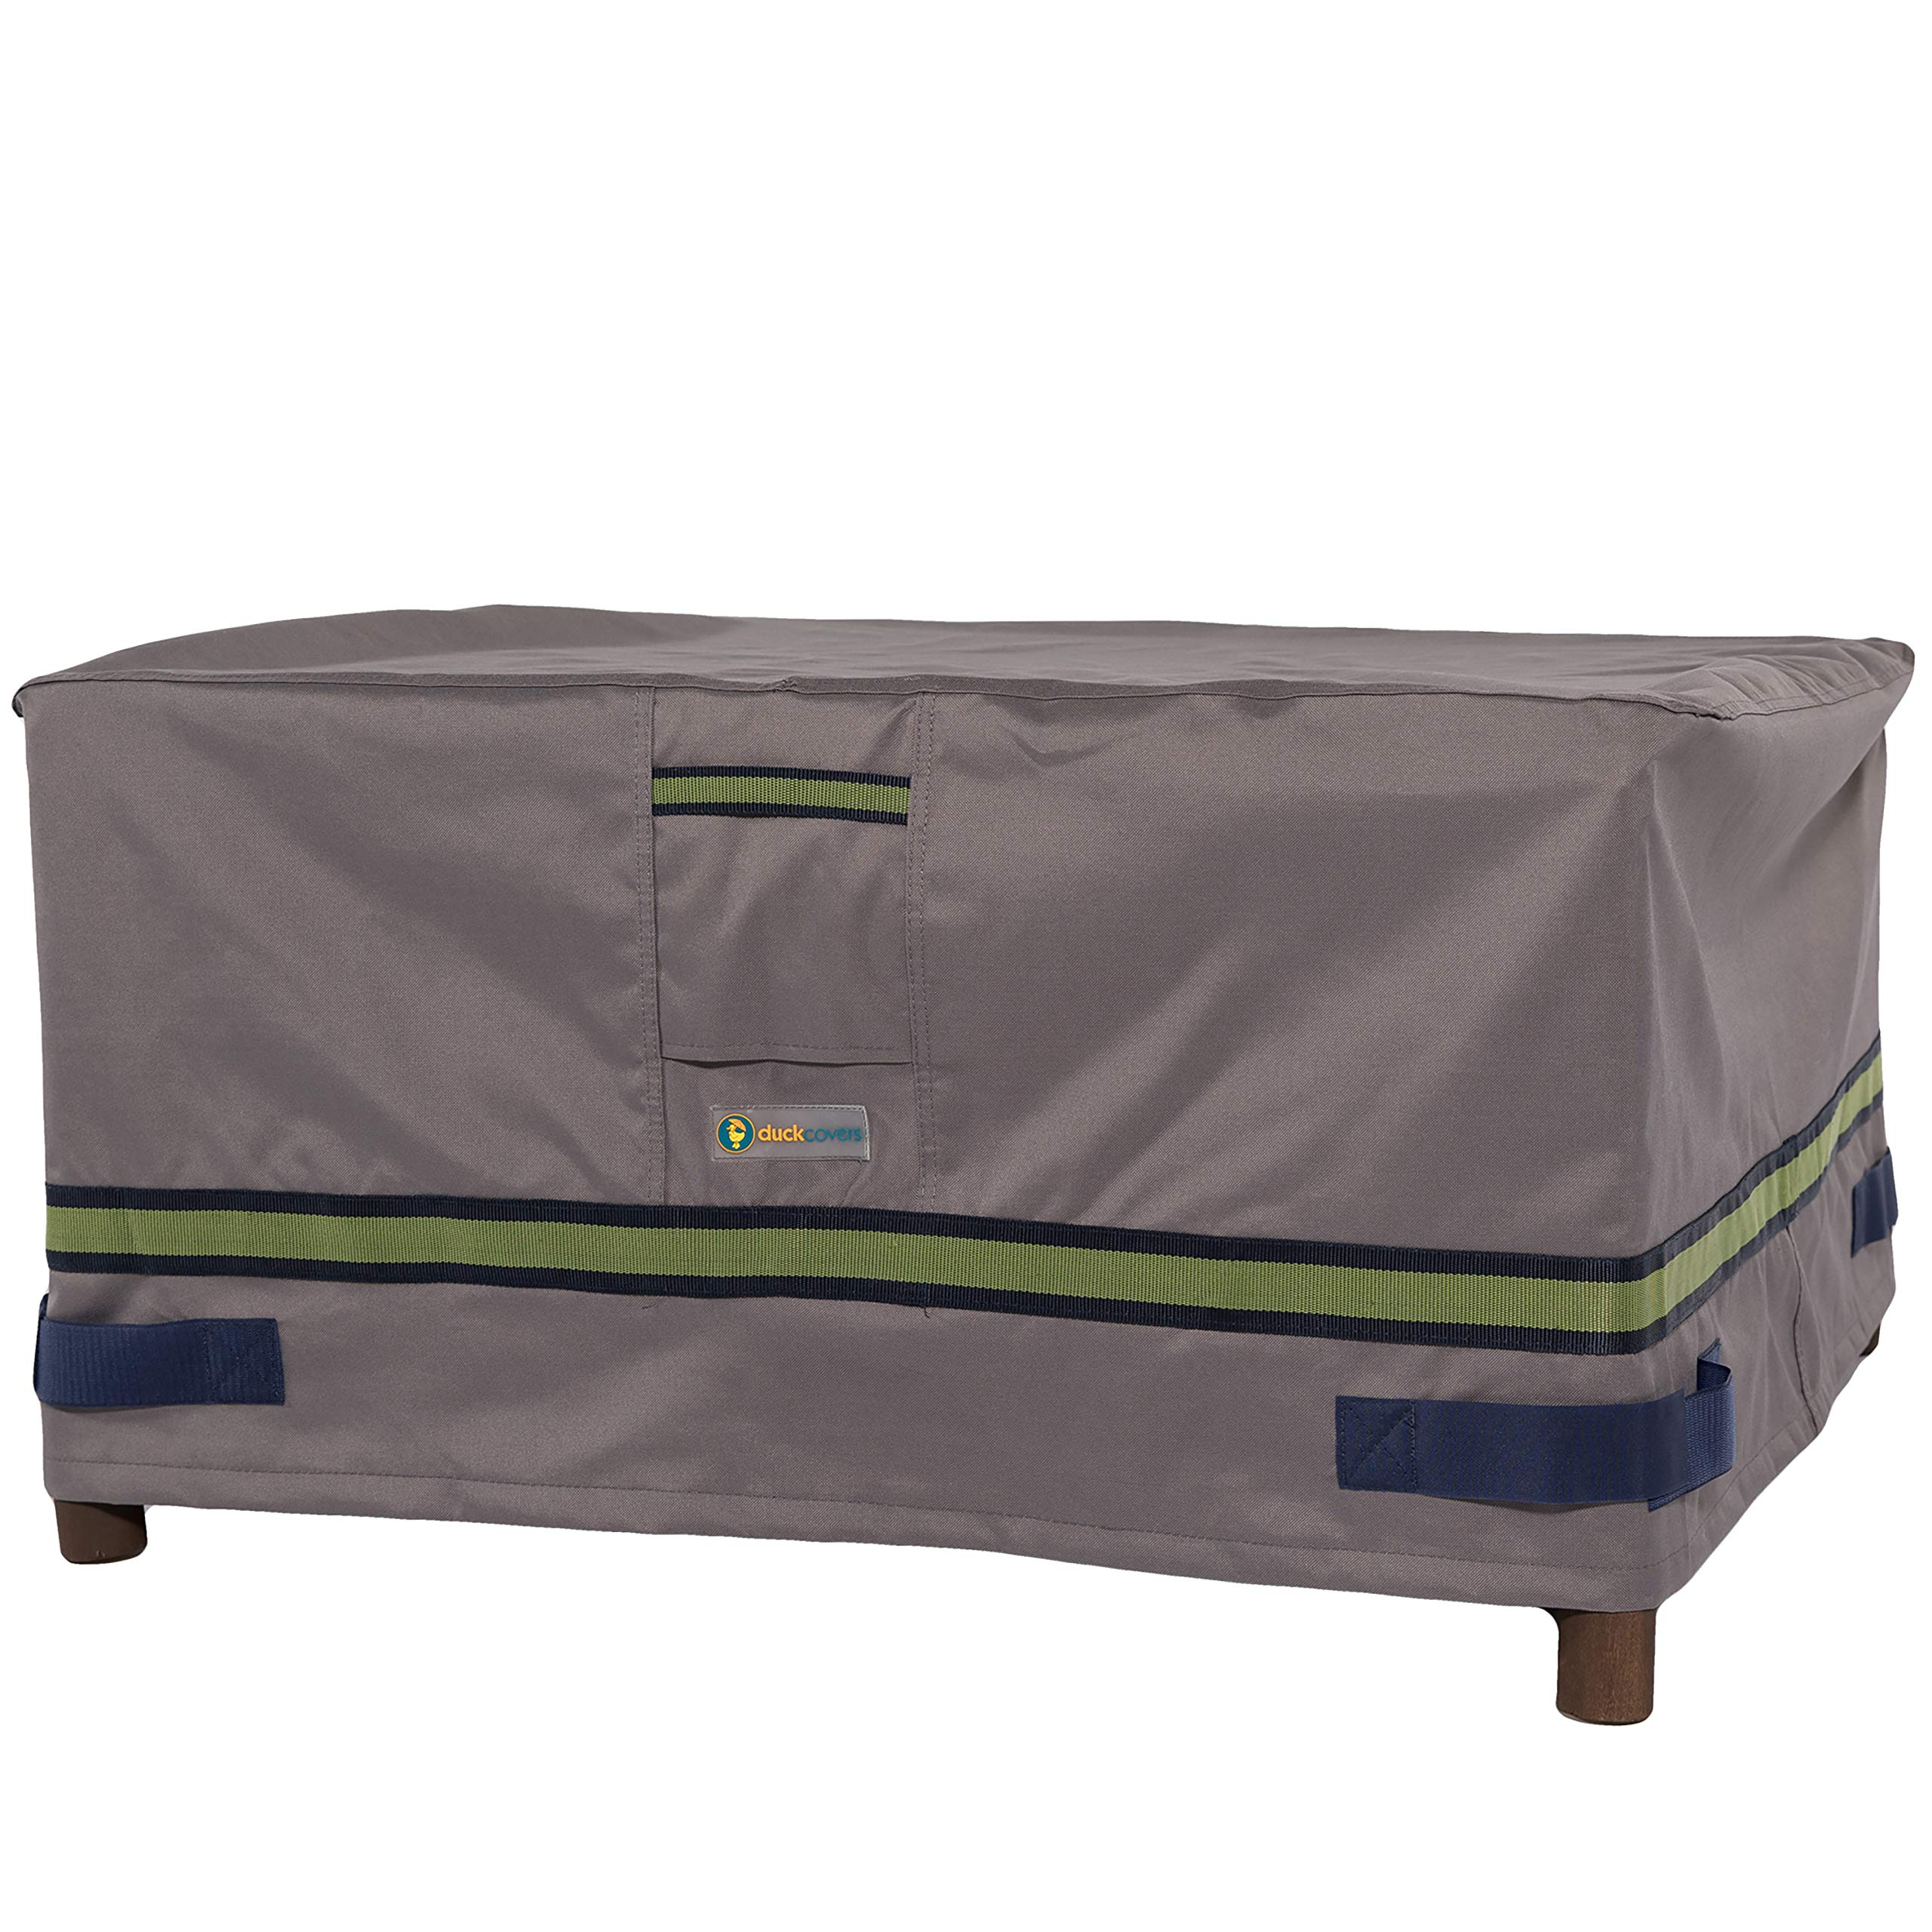 Duck Covers Soteria Rainproof 52'' Rectangular Patio Ottoman/Side Table Cover by Duck Covers